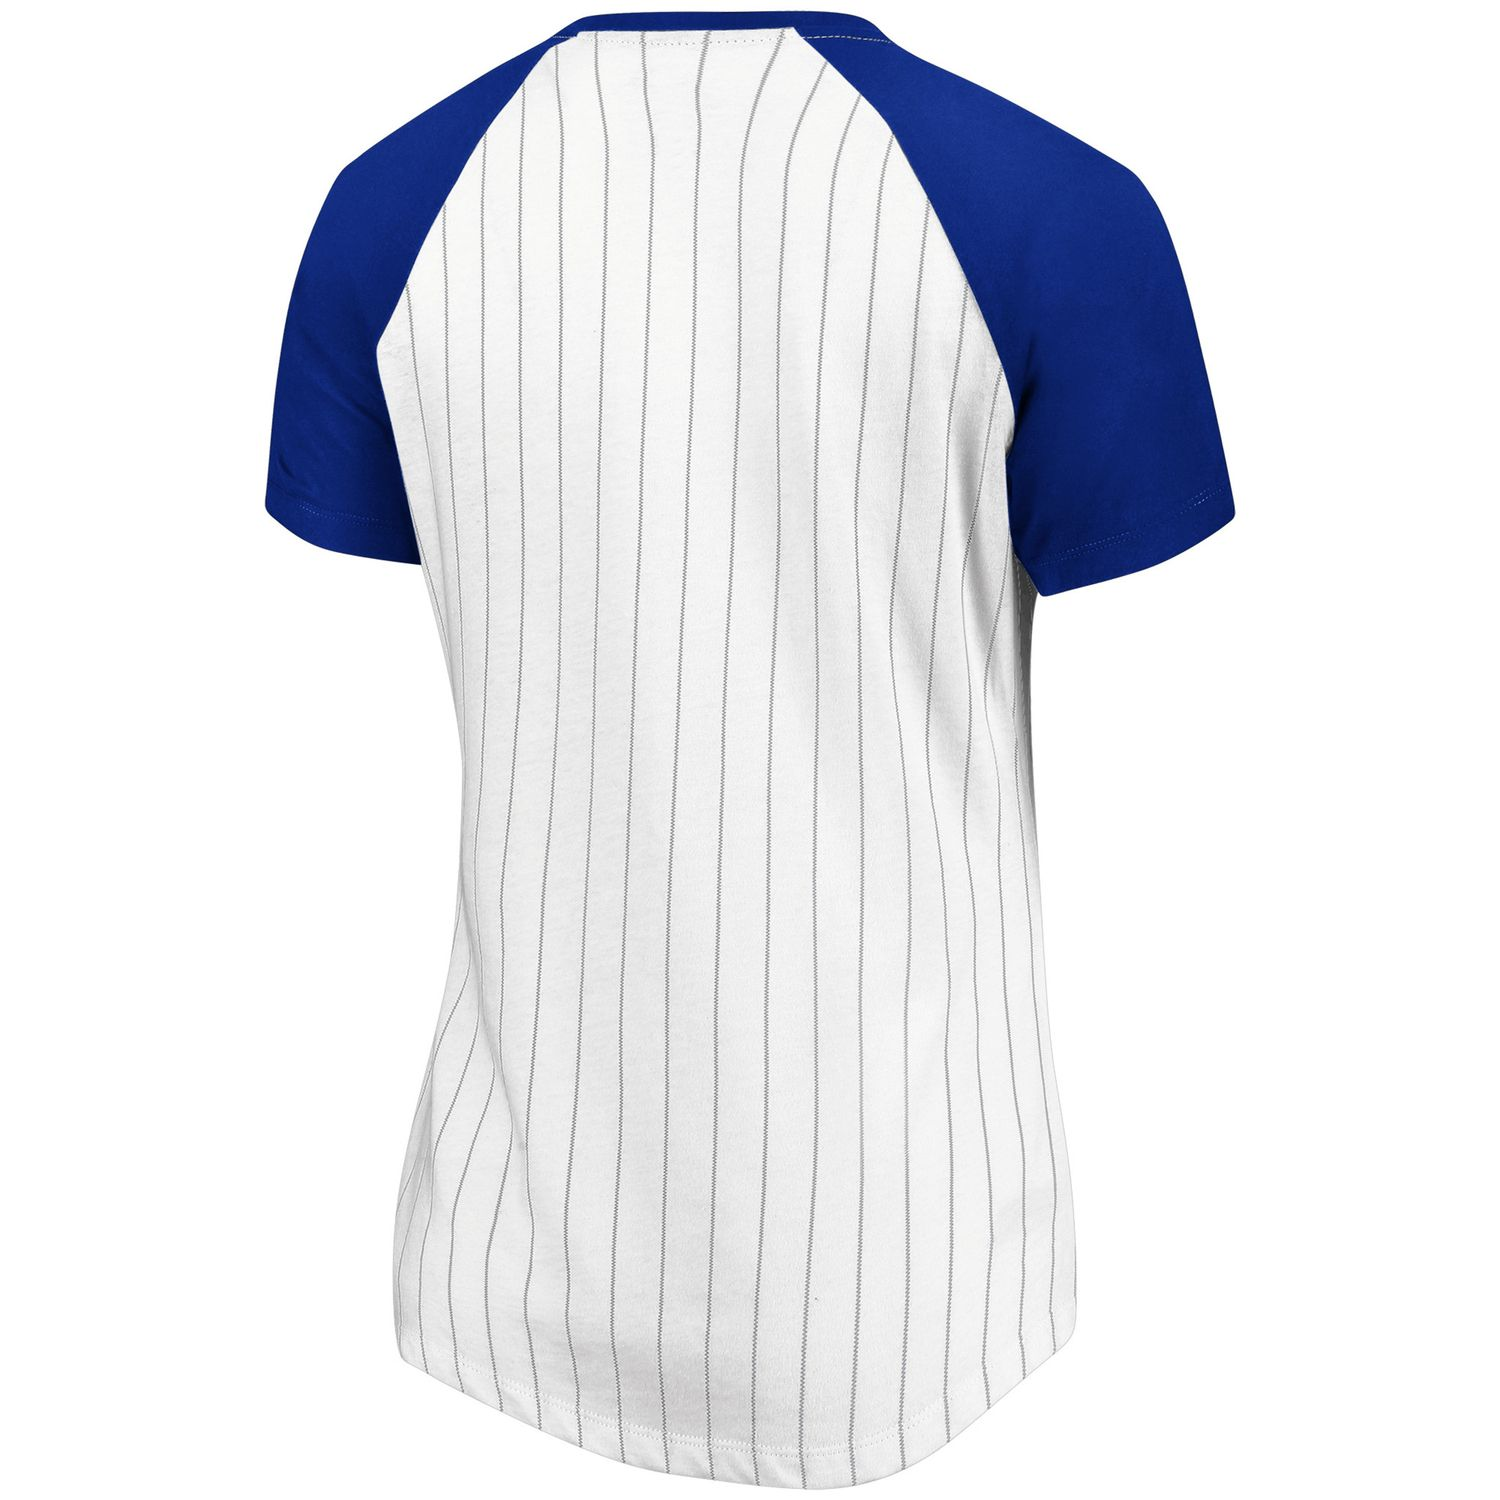 Womens Chicago Cubs TShirts Sports Fan Clothing